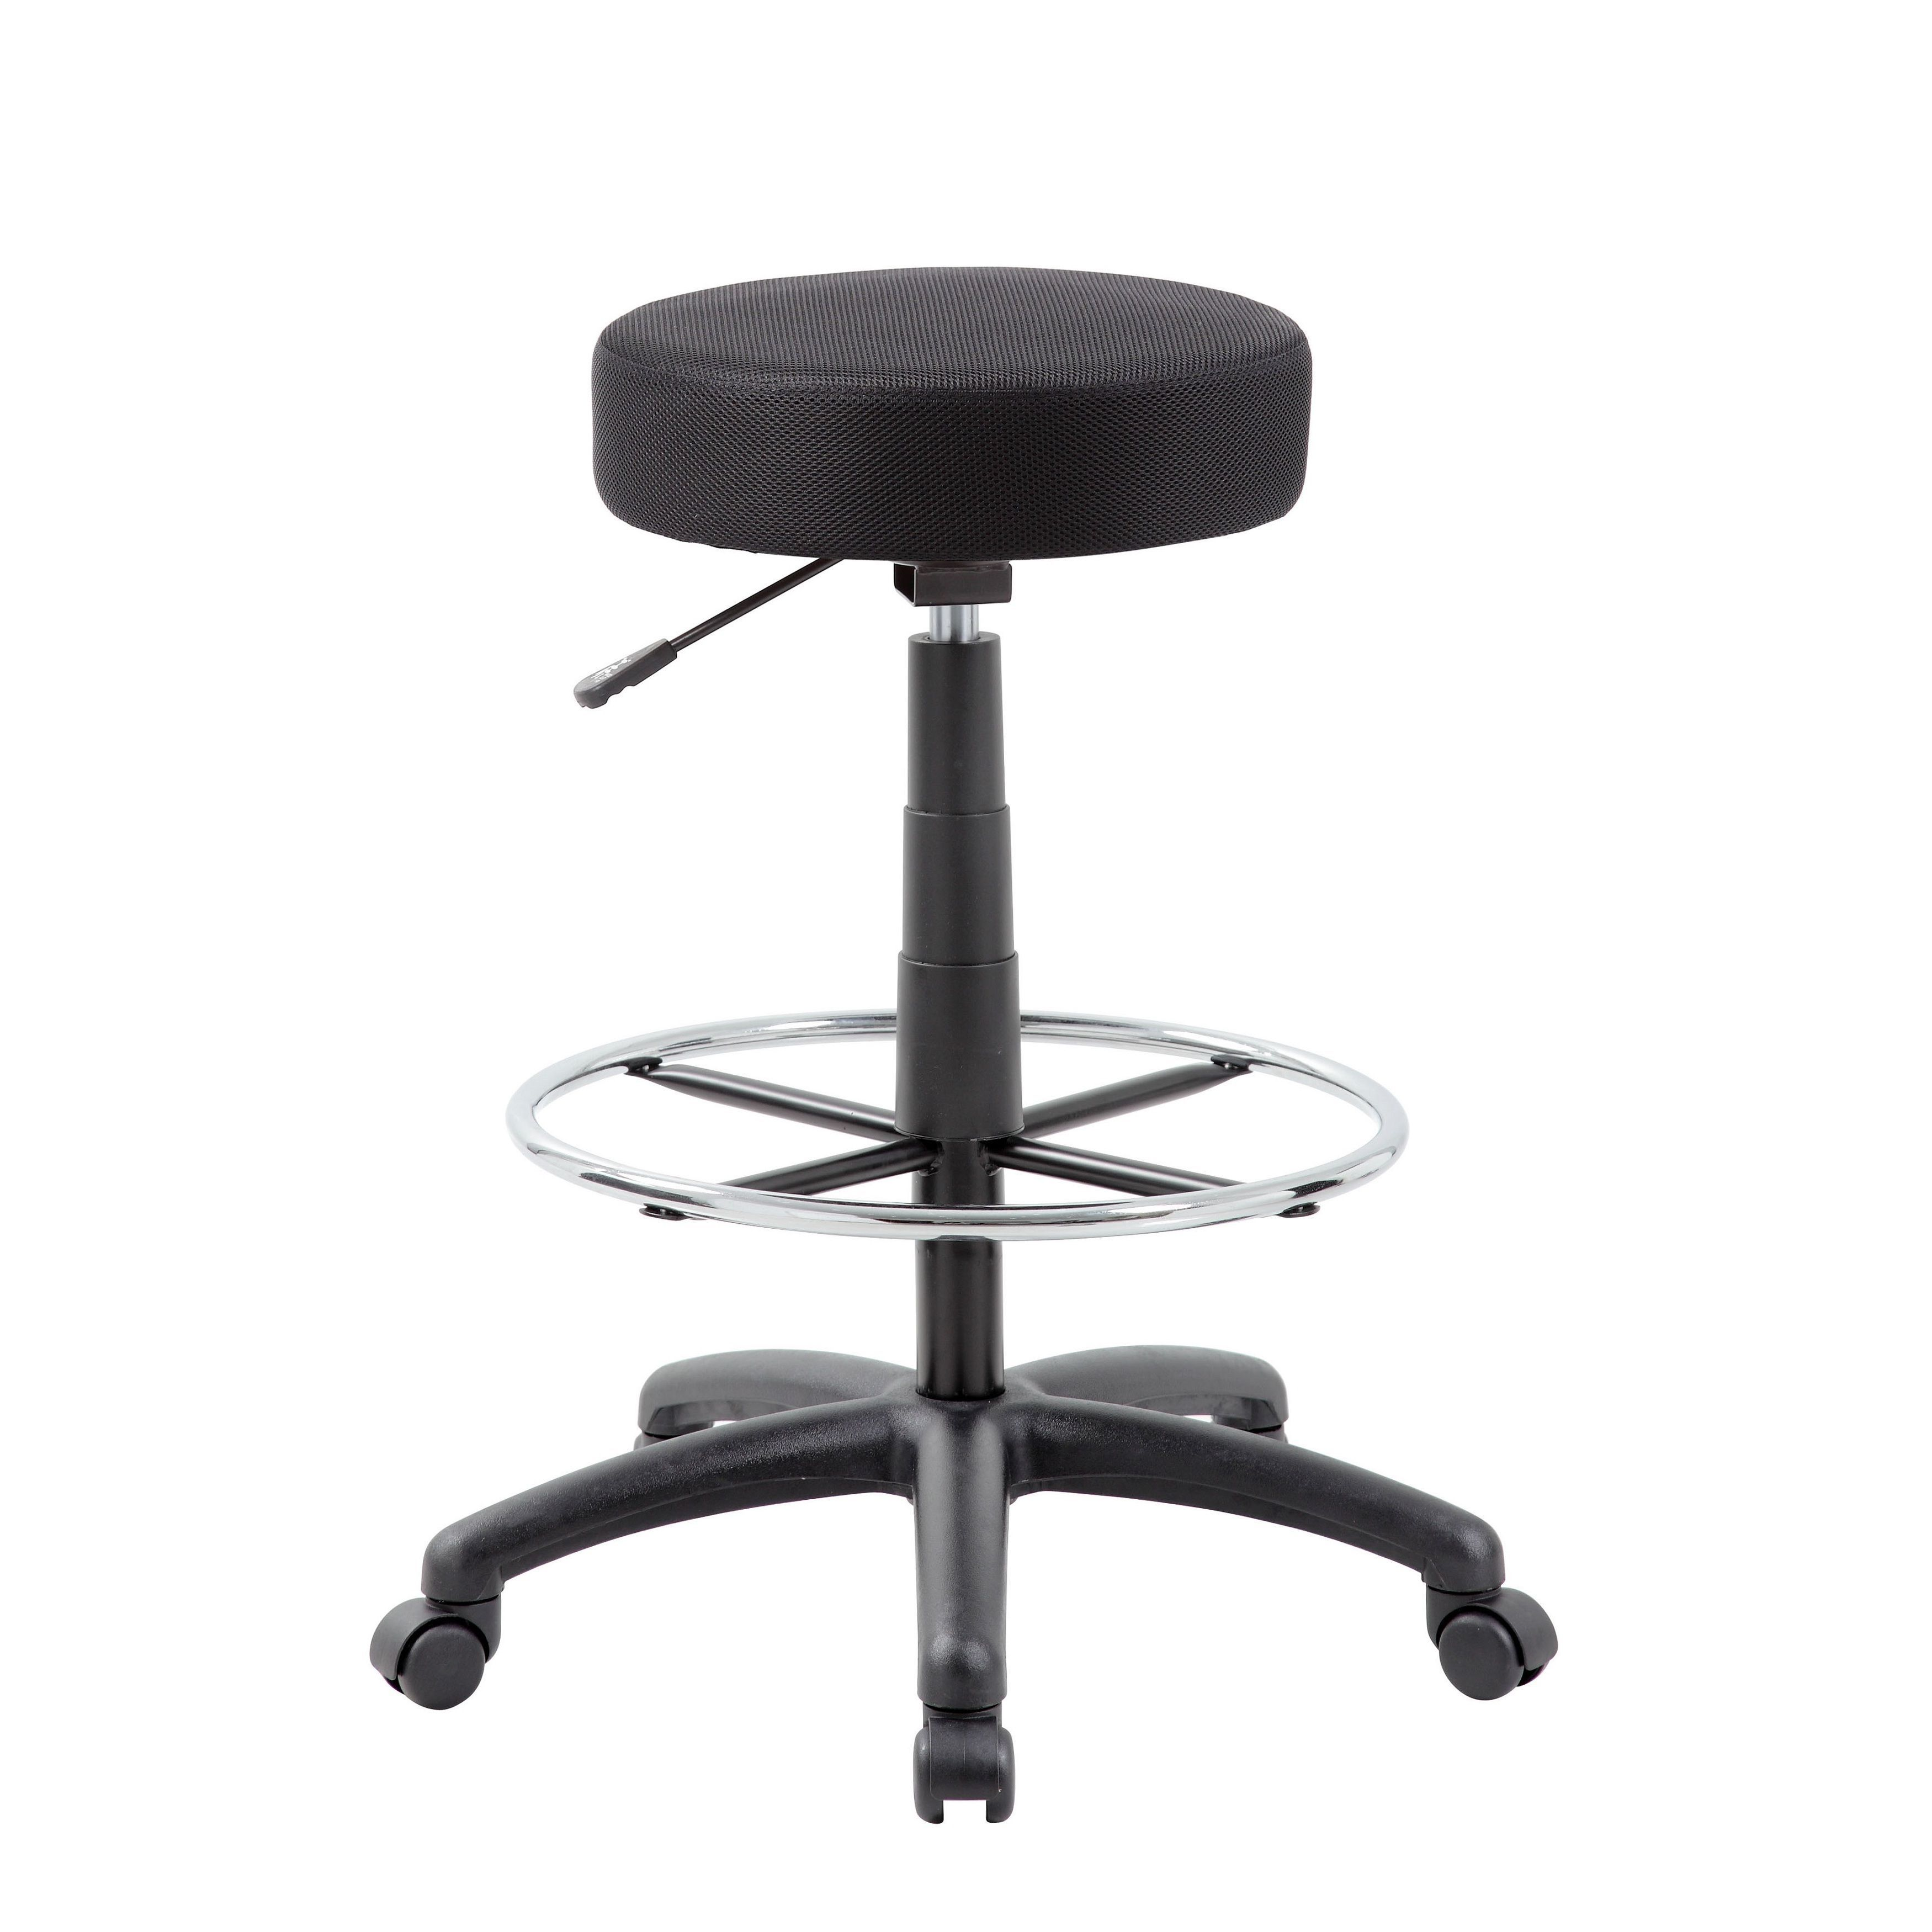 Peachy Boss Dot Adjustable Drafting Stool Black Drafting Chair Dailytribune Chair Design For Home Dailytribuneorg